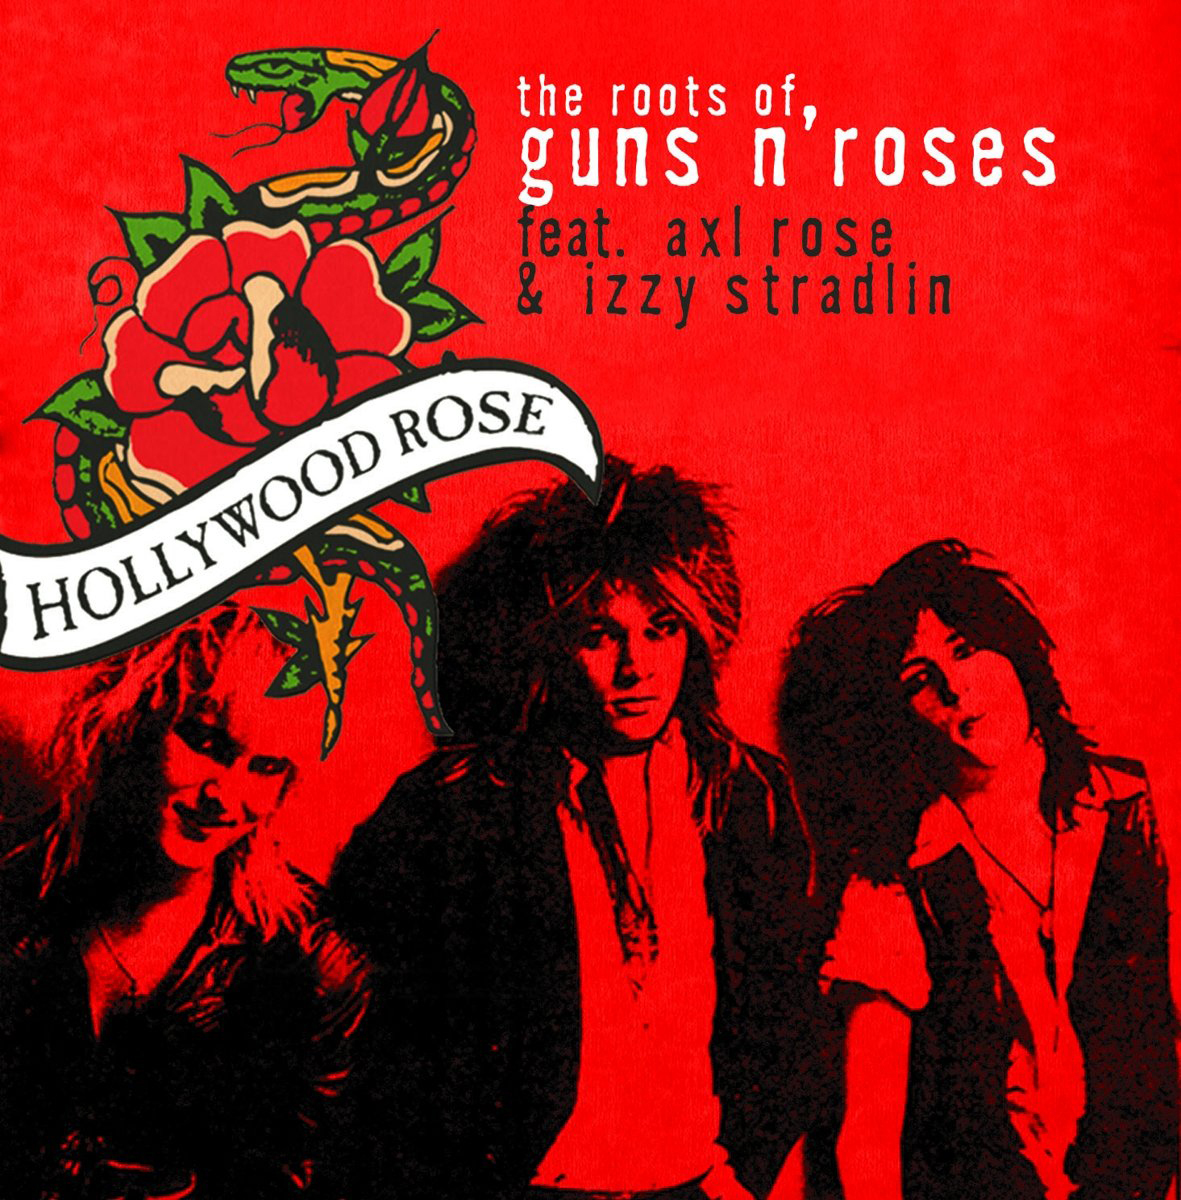 Hollywood Rose,Axl Rose Hollywood Rose Feat. Axl Rose. The Roots Of Guns'n Roses axl usa sro artist off white